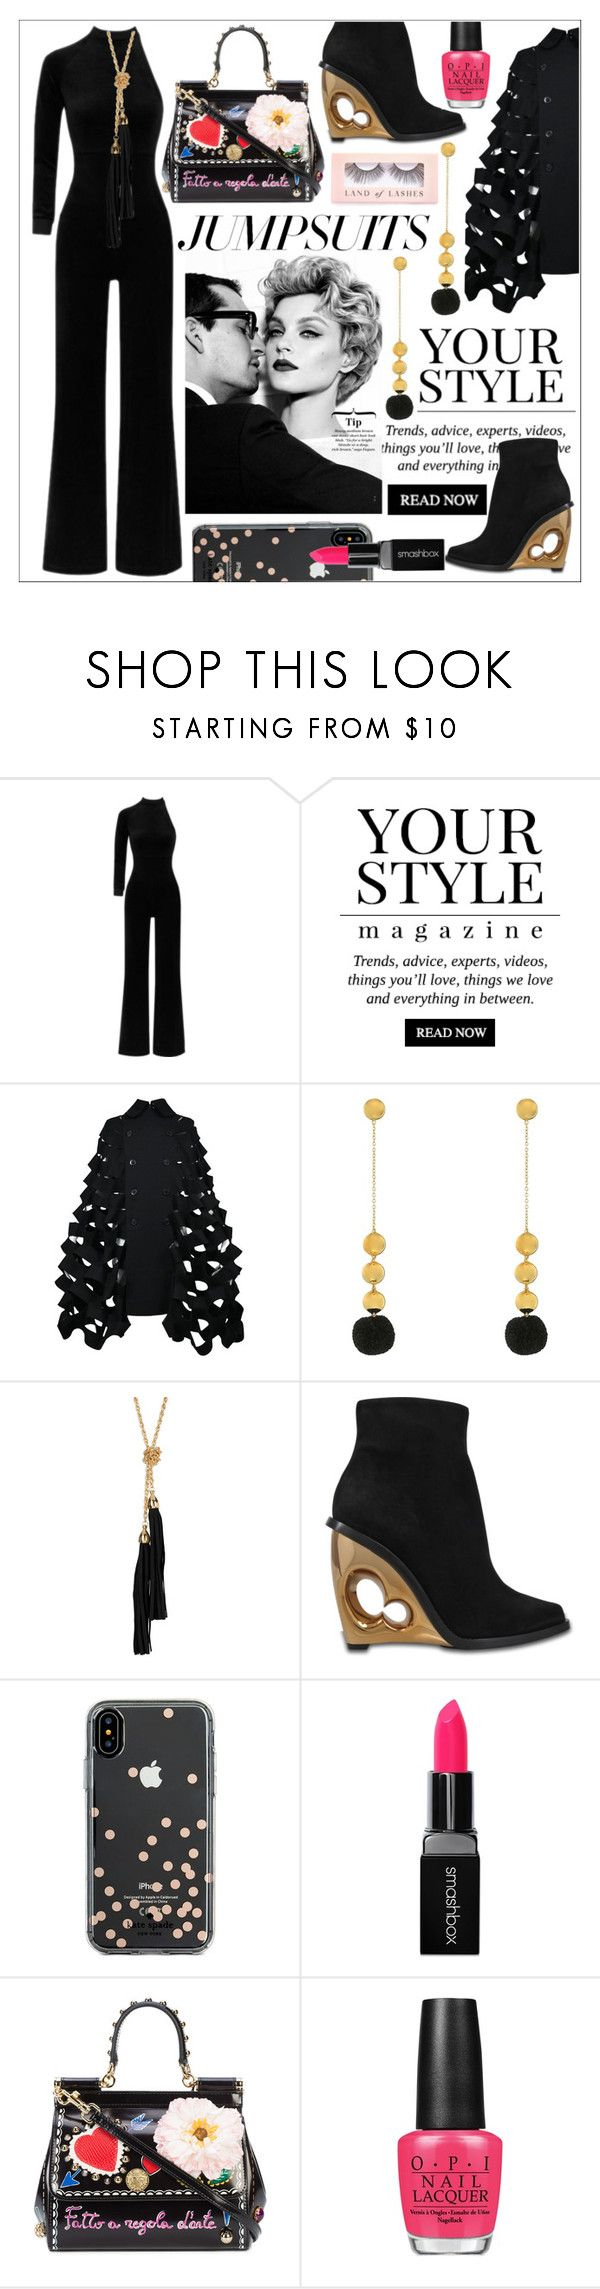 """One and Done * Jumpsuits"" by calamity-jane-always ❤ liked on Polyvore featuring Vetements, Pussycat, Junya Watanabe, Elizabeth and James, Sterling Forever, Alexander McQueen, Kate Spade, Smashbox, Dolce&Gabbana and OPI"